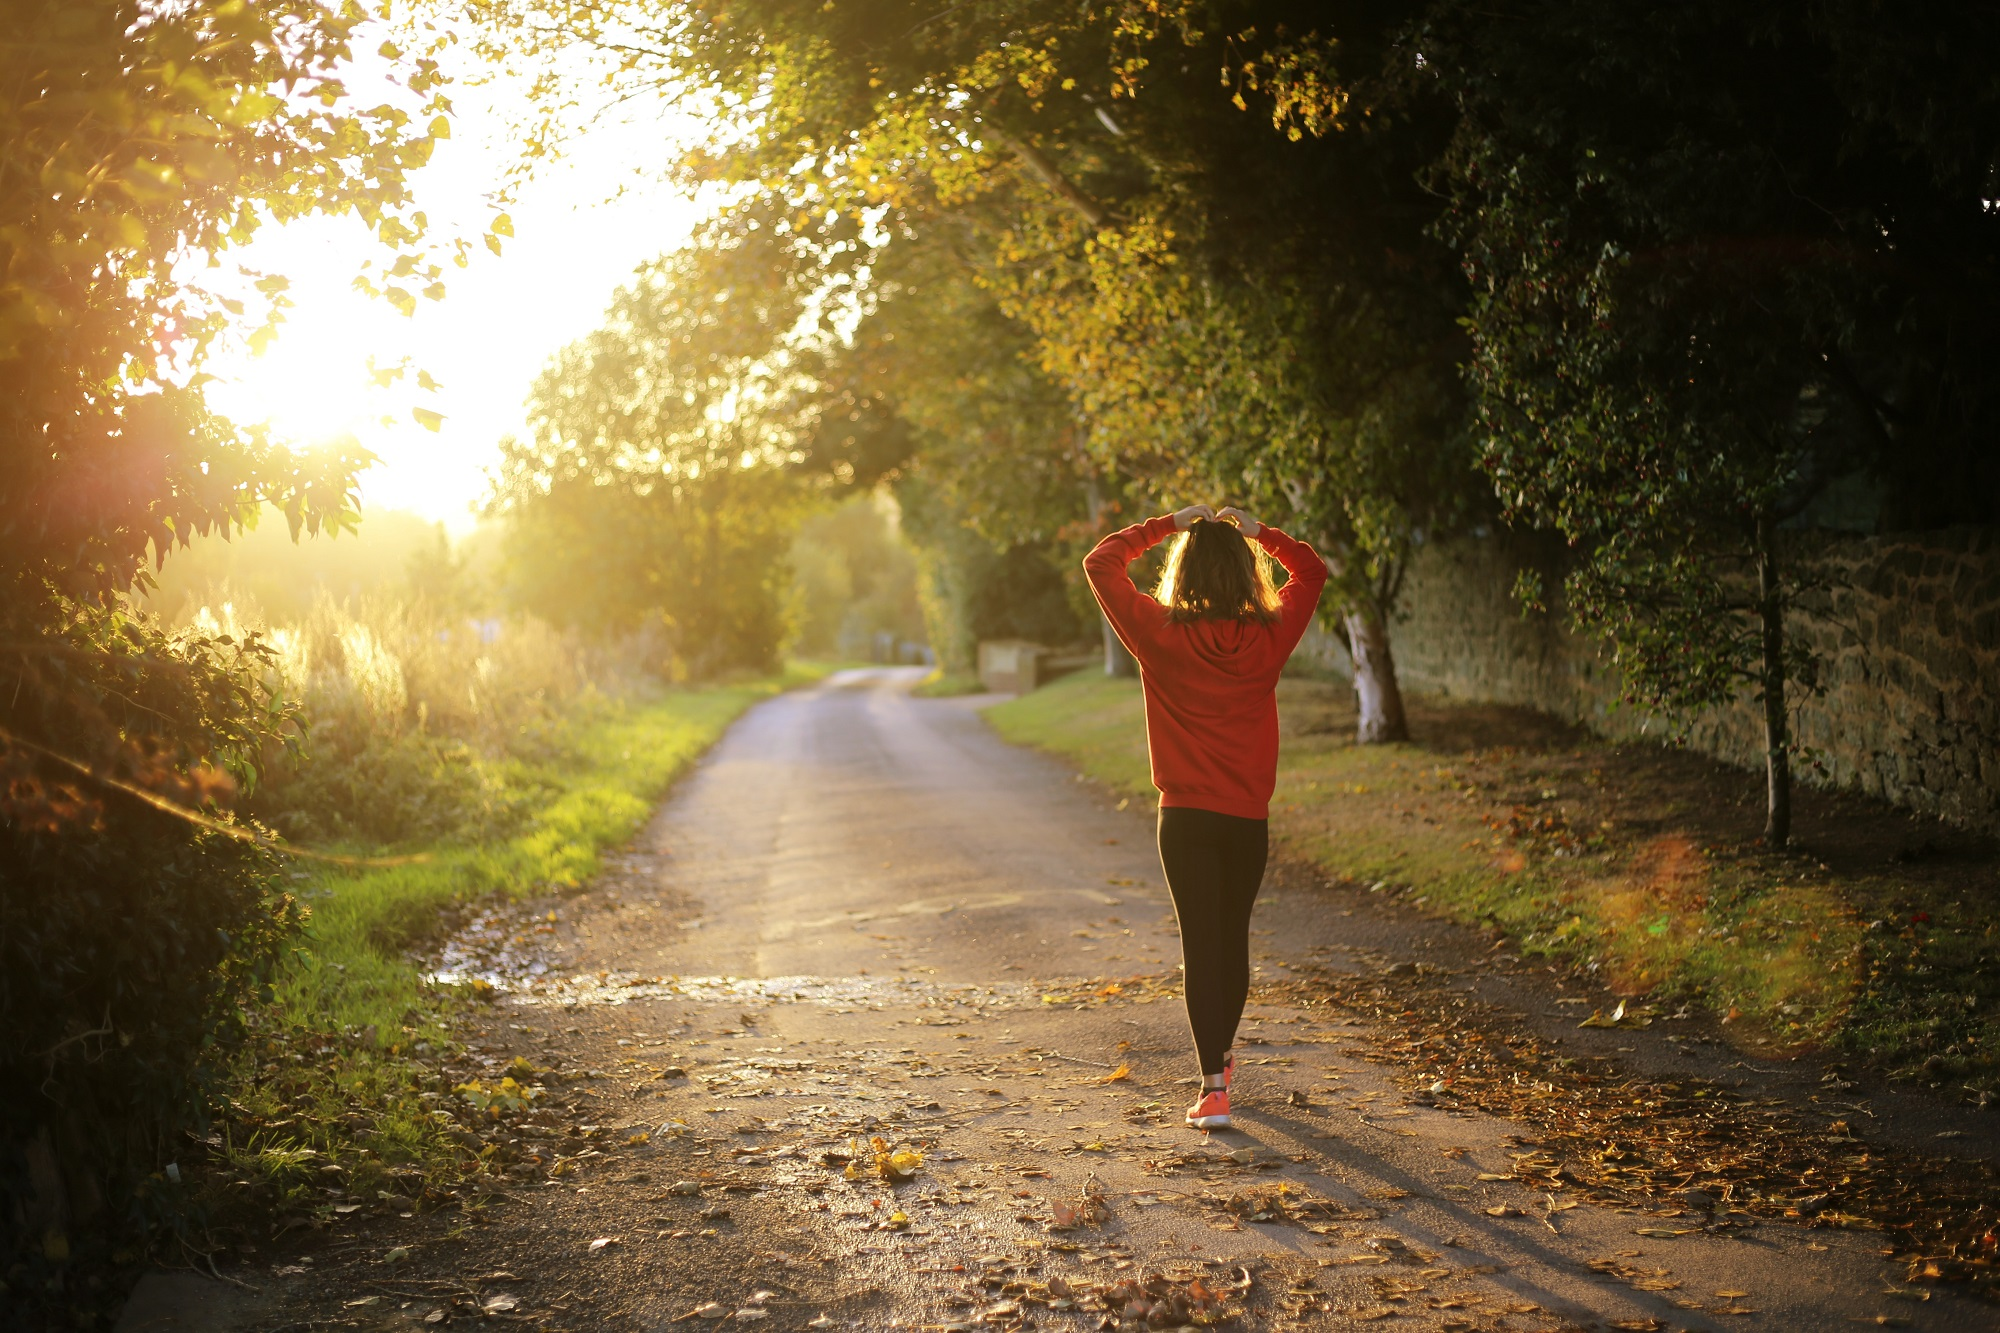 """We hear it often – """"Never skip your warm-up"""". But, is all the hype about the importance of warming up really accurate? The truth is that skipping a warm-up could increase your chance for injury and be worse for your workout performance."""